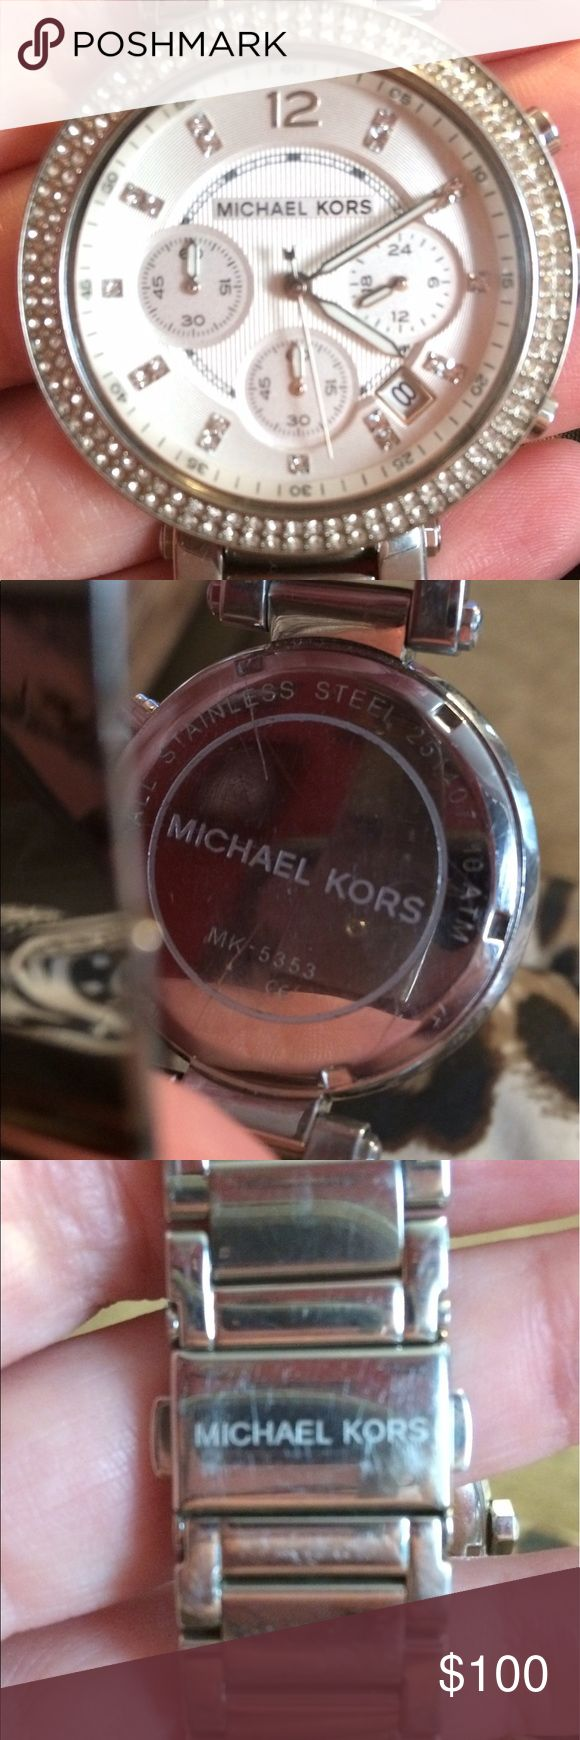 ❗️MAKE AN OFFER❗️Michael Kors Watch Michael Kors MK5353 watch is in excellent condition. Has all the diamonds and there are no scratches or scuffs on the face. It has a couple minor scratches on the back but nothing major. Also there is some light scratches on the links from normal wear but nothing too noticeable. It is 100% authentic. Any questions just ask thanks for your time! MAKE AN OFFER!! Michael Kors Accessories Watches